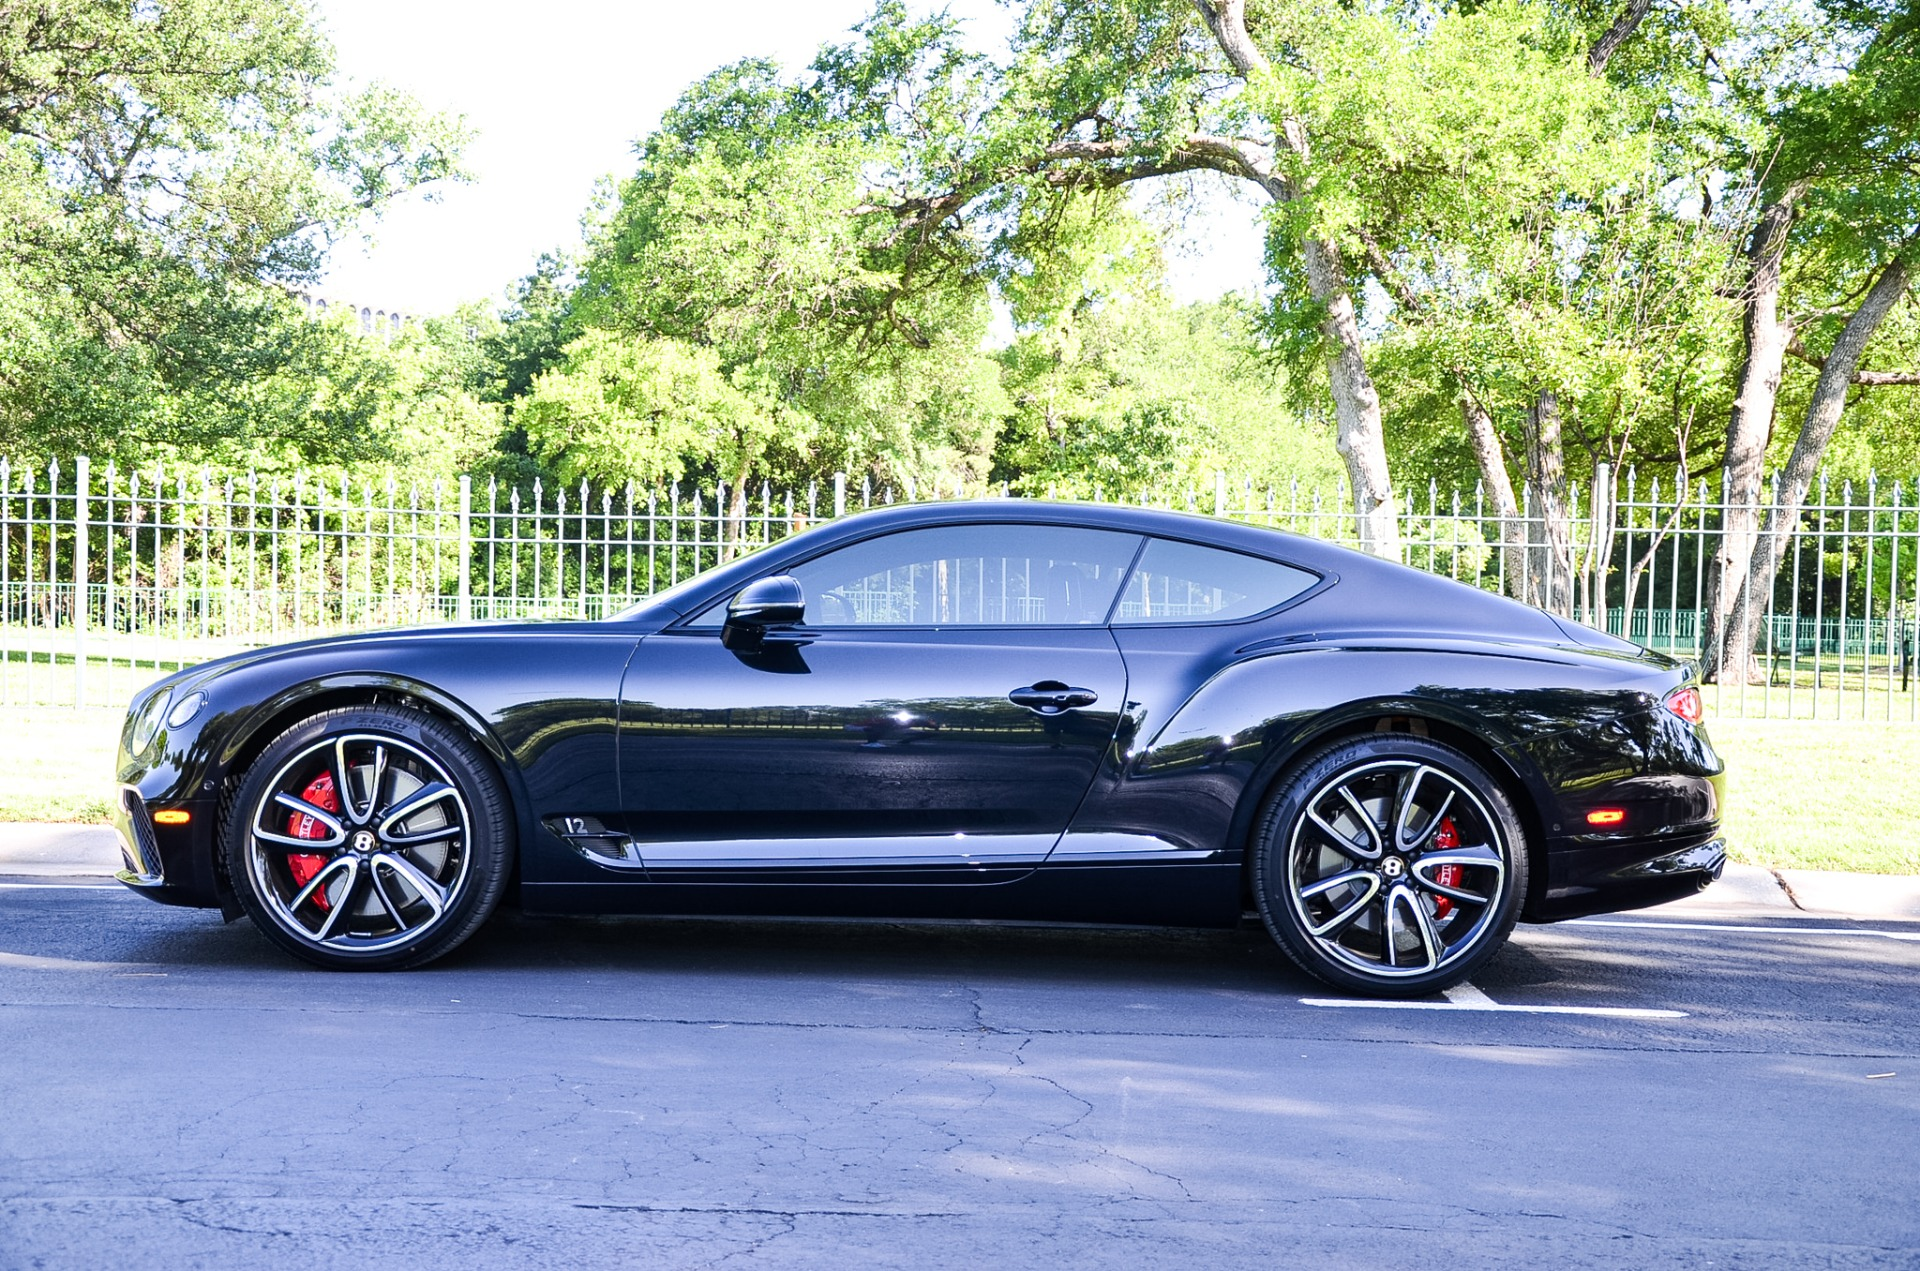 2020 Bentley GT Continental for sale $268,395 Platinum Motorcars in Ft Worth TX 1